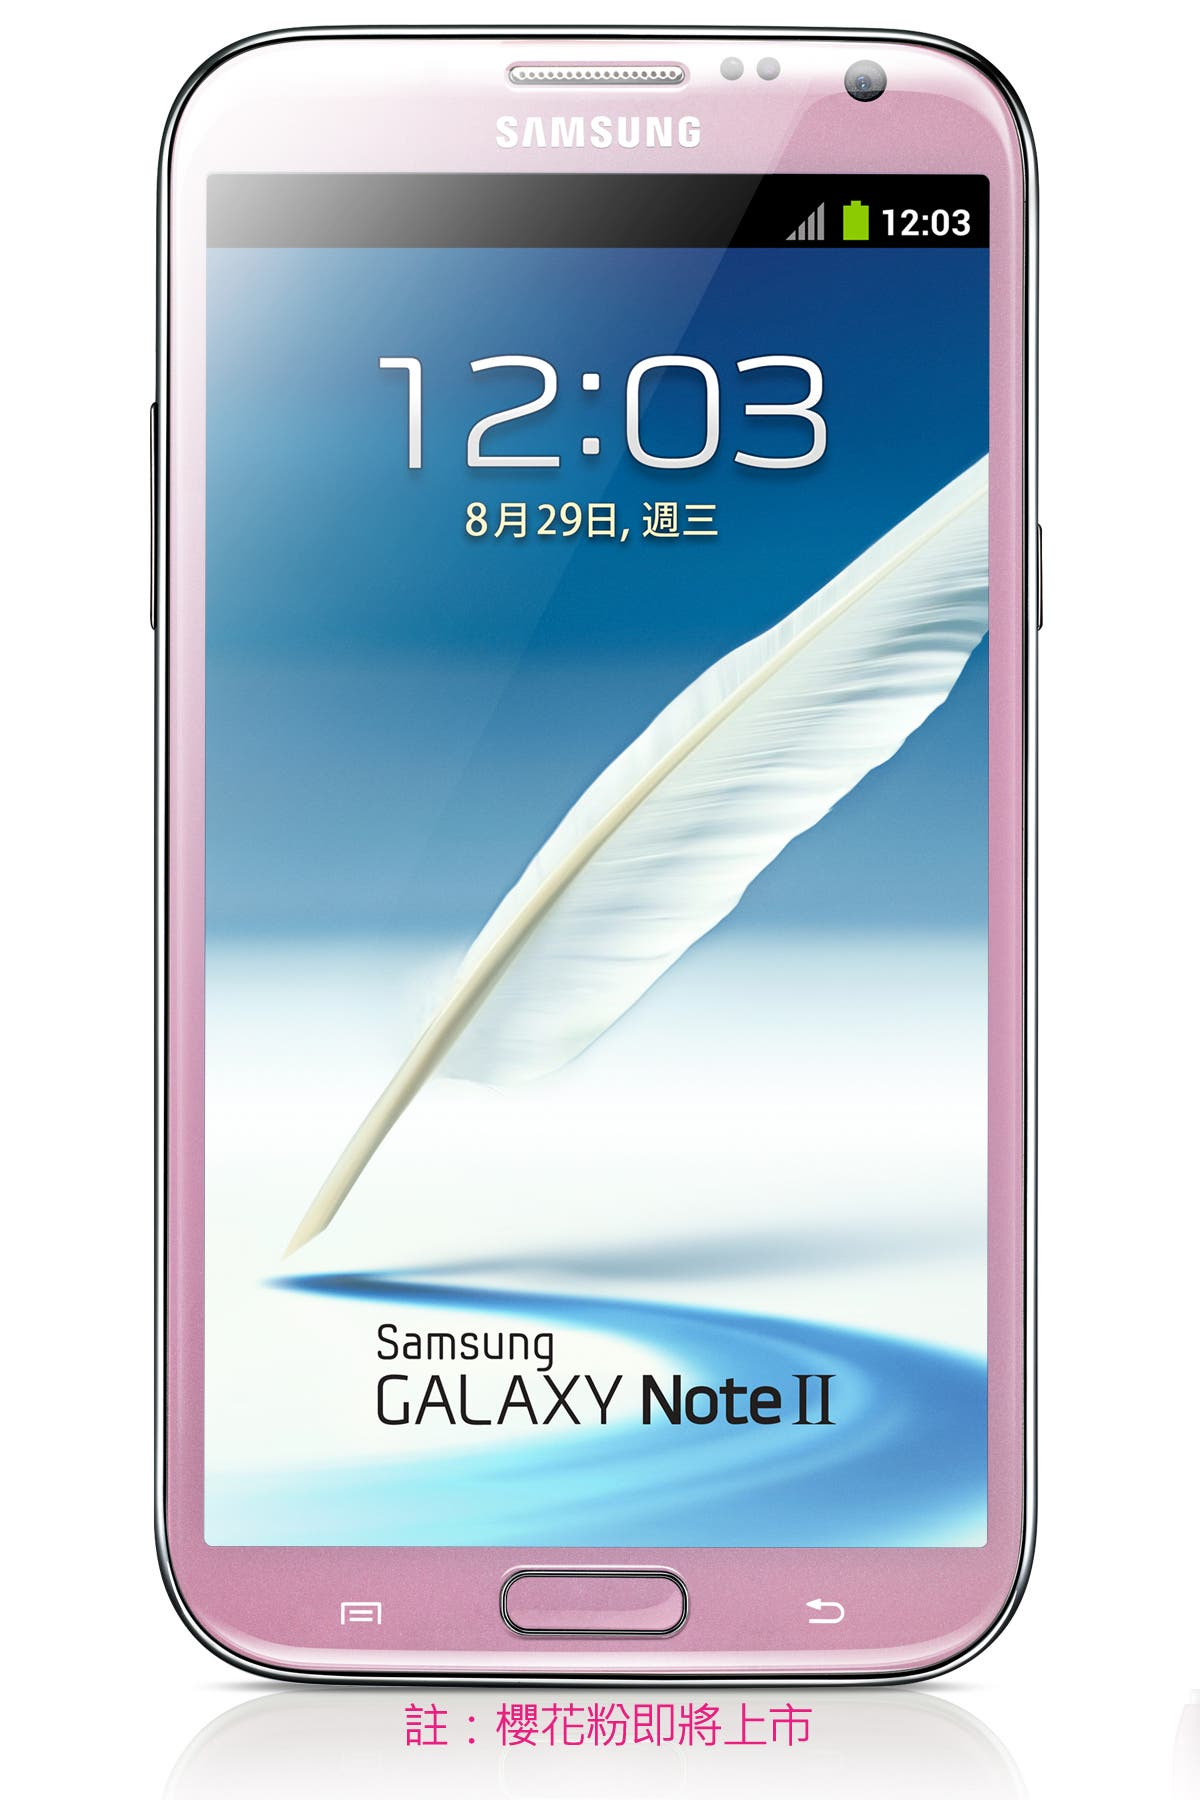 Samsung Galaxy Note 2 in rosa vorgestellt